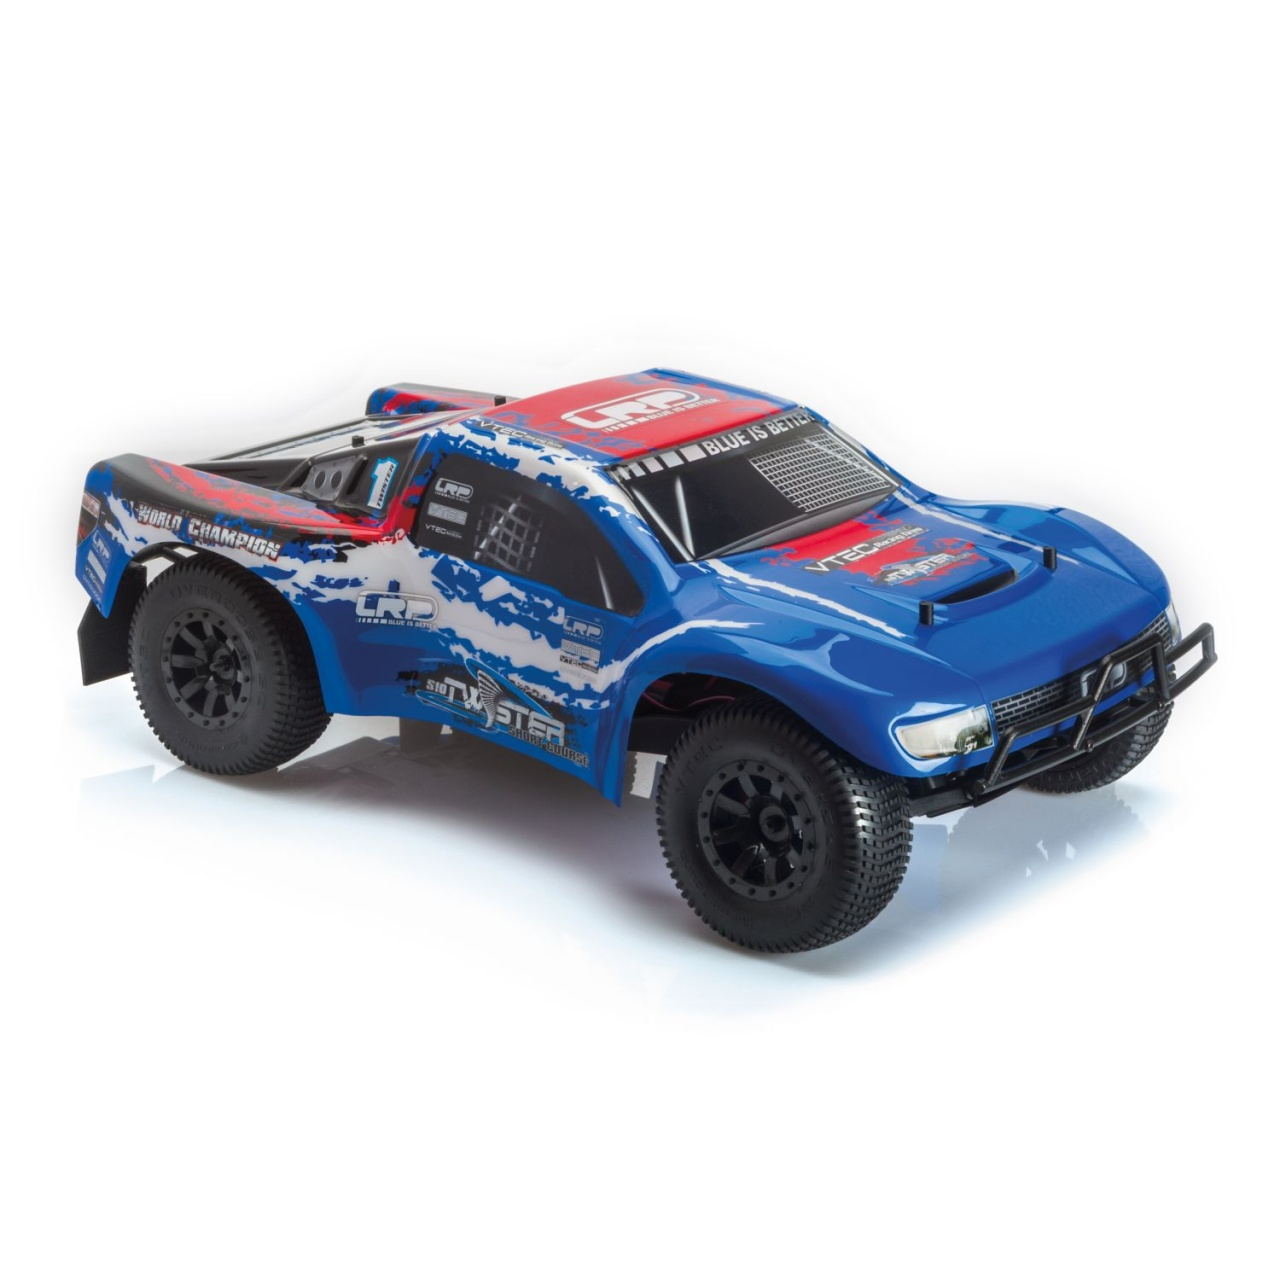 LRP S10 Twister 2.4GHZ RTR 1/10 2